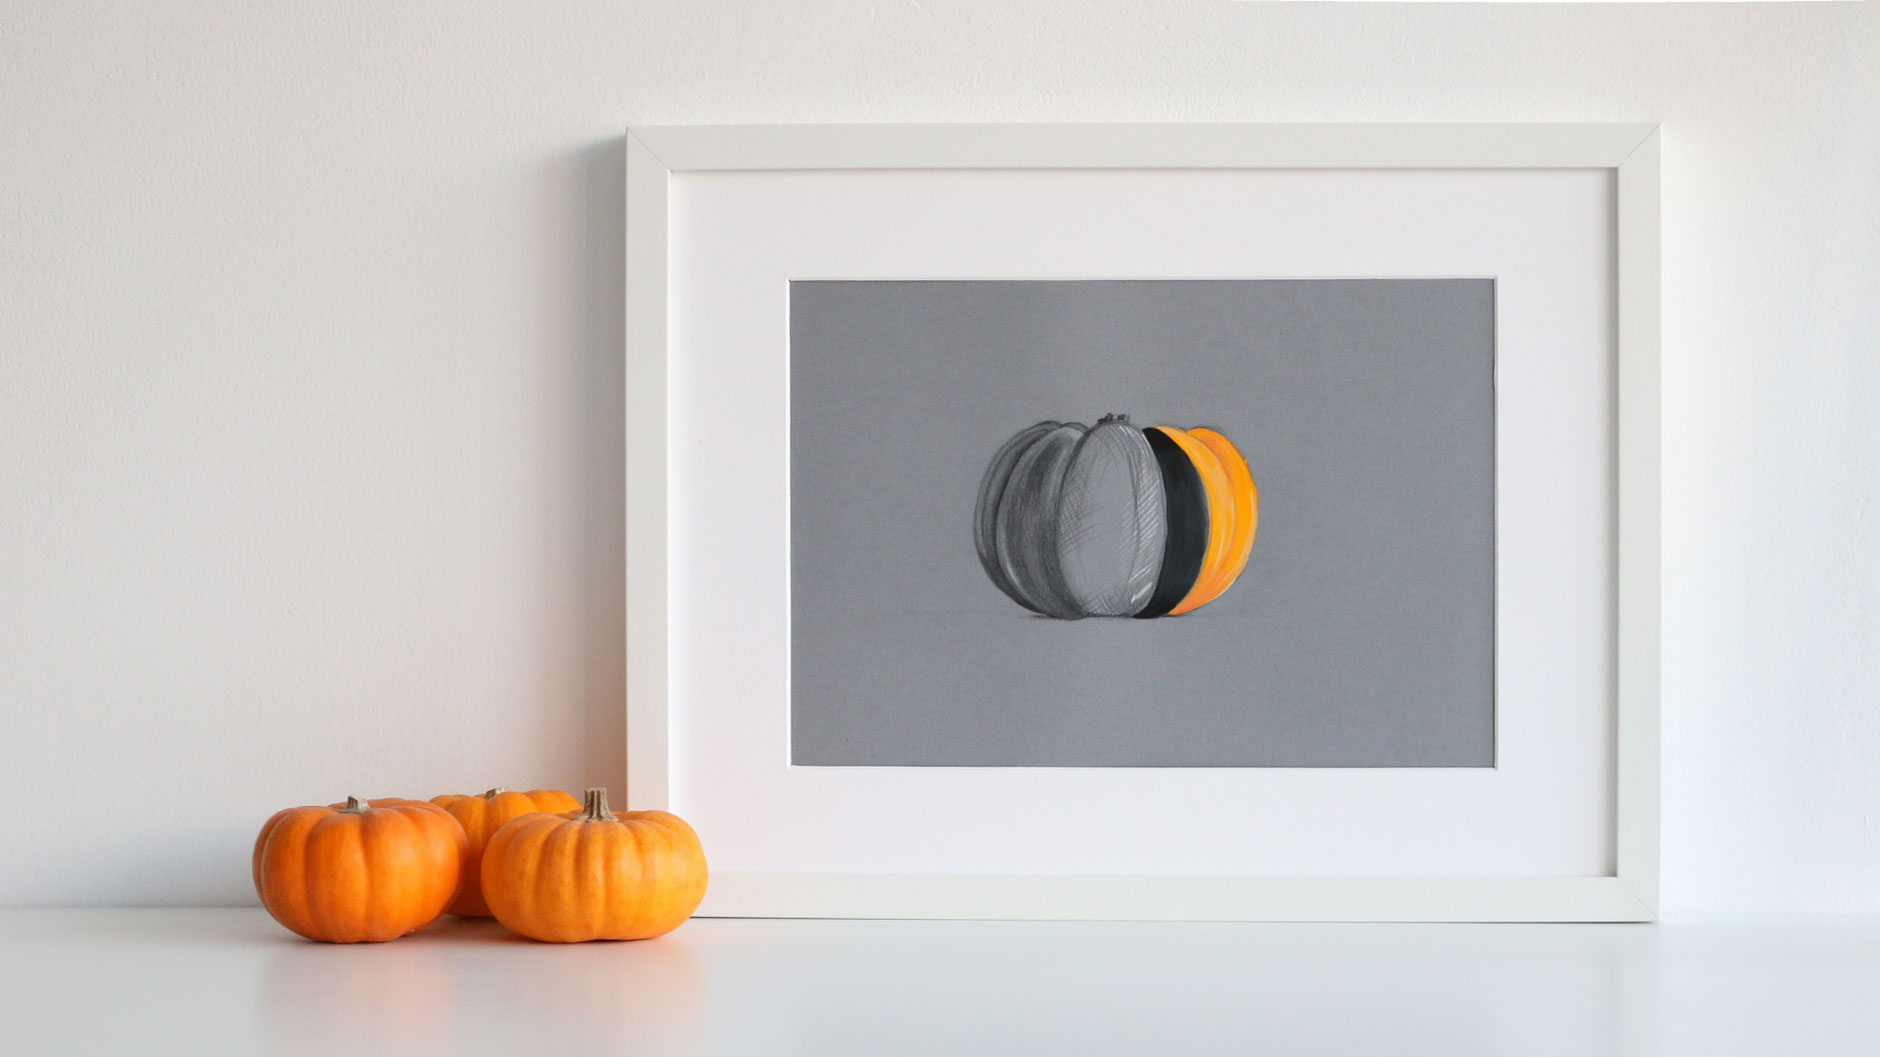 The finished drawing belongs to a beautiful autumnal interior |  Drawing a Pumpkin and Creating a Sweater , by The Daily Atelier